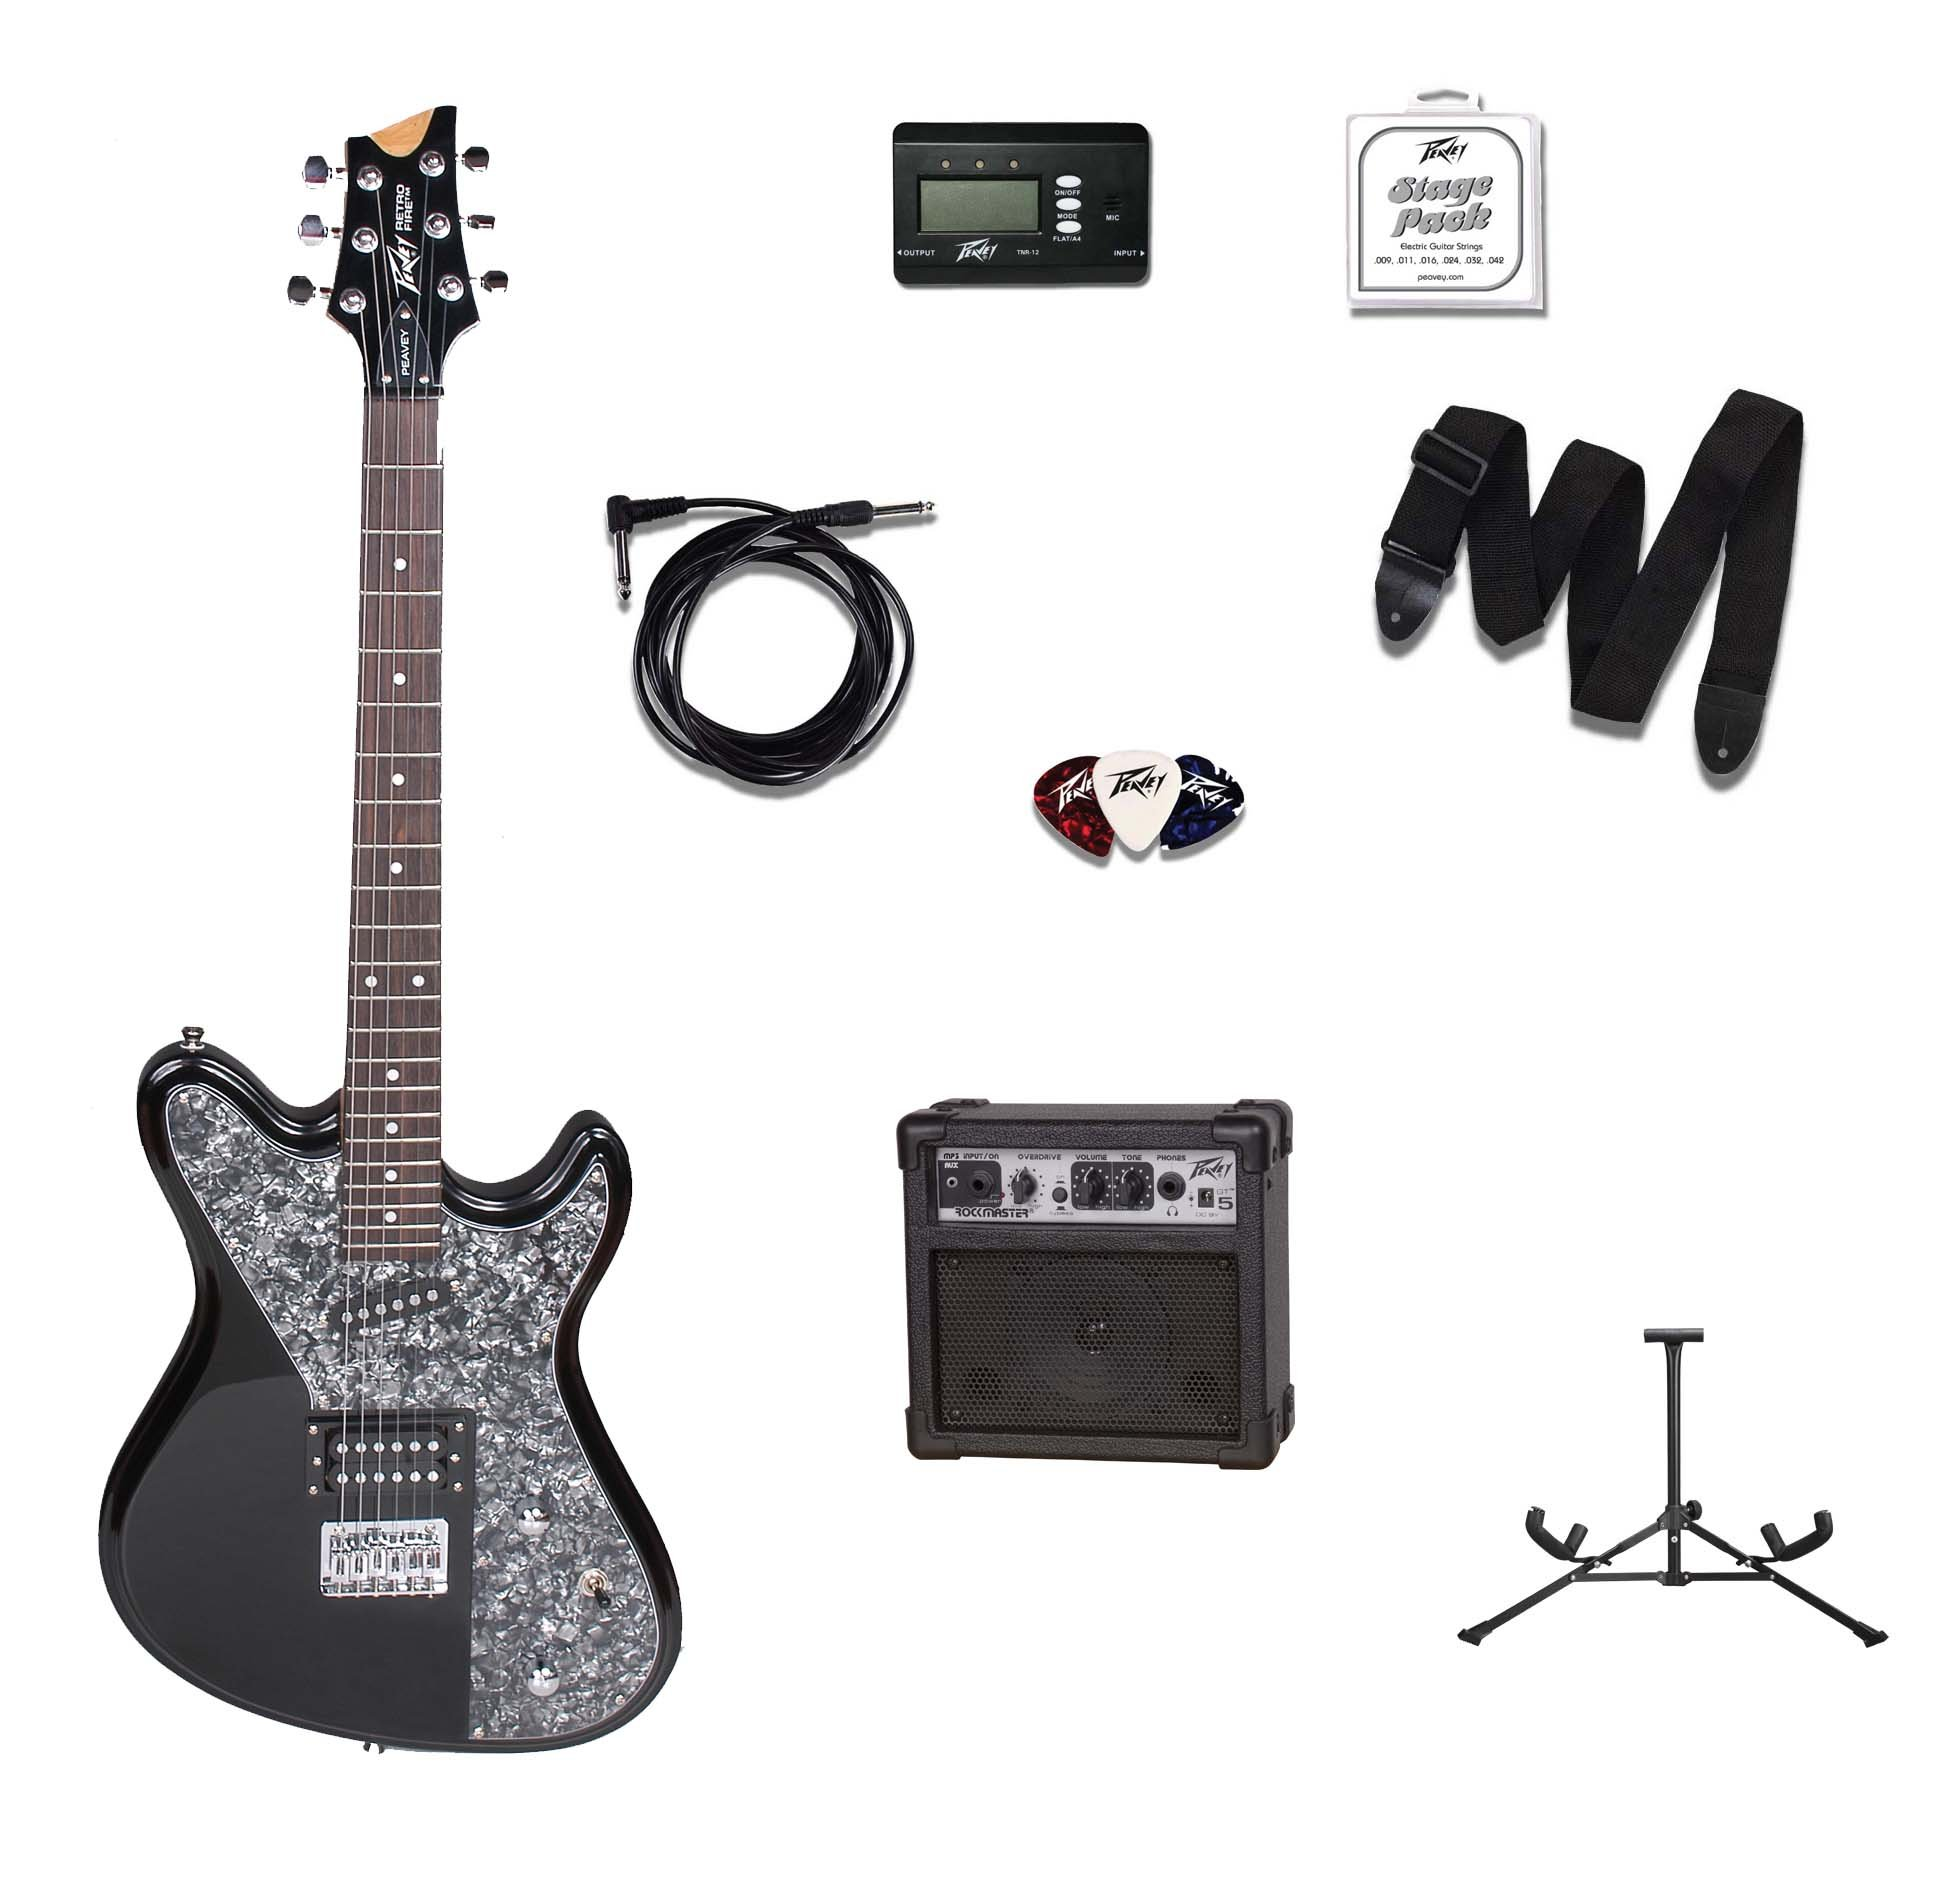 Cheap Peavey Electronics 03005210 Retro Fire Limited Black with GT5 for Electric Guitar Black Friday & Cyber Monday 2019